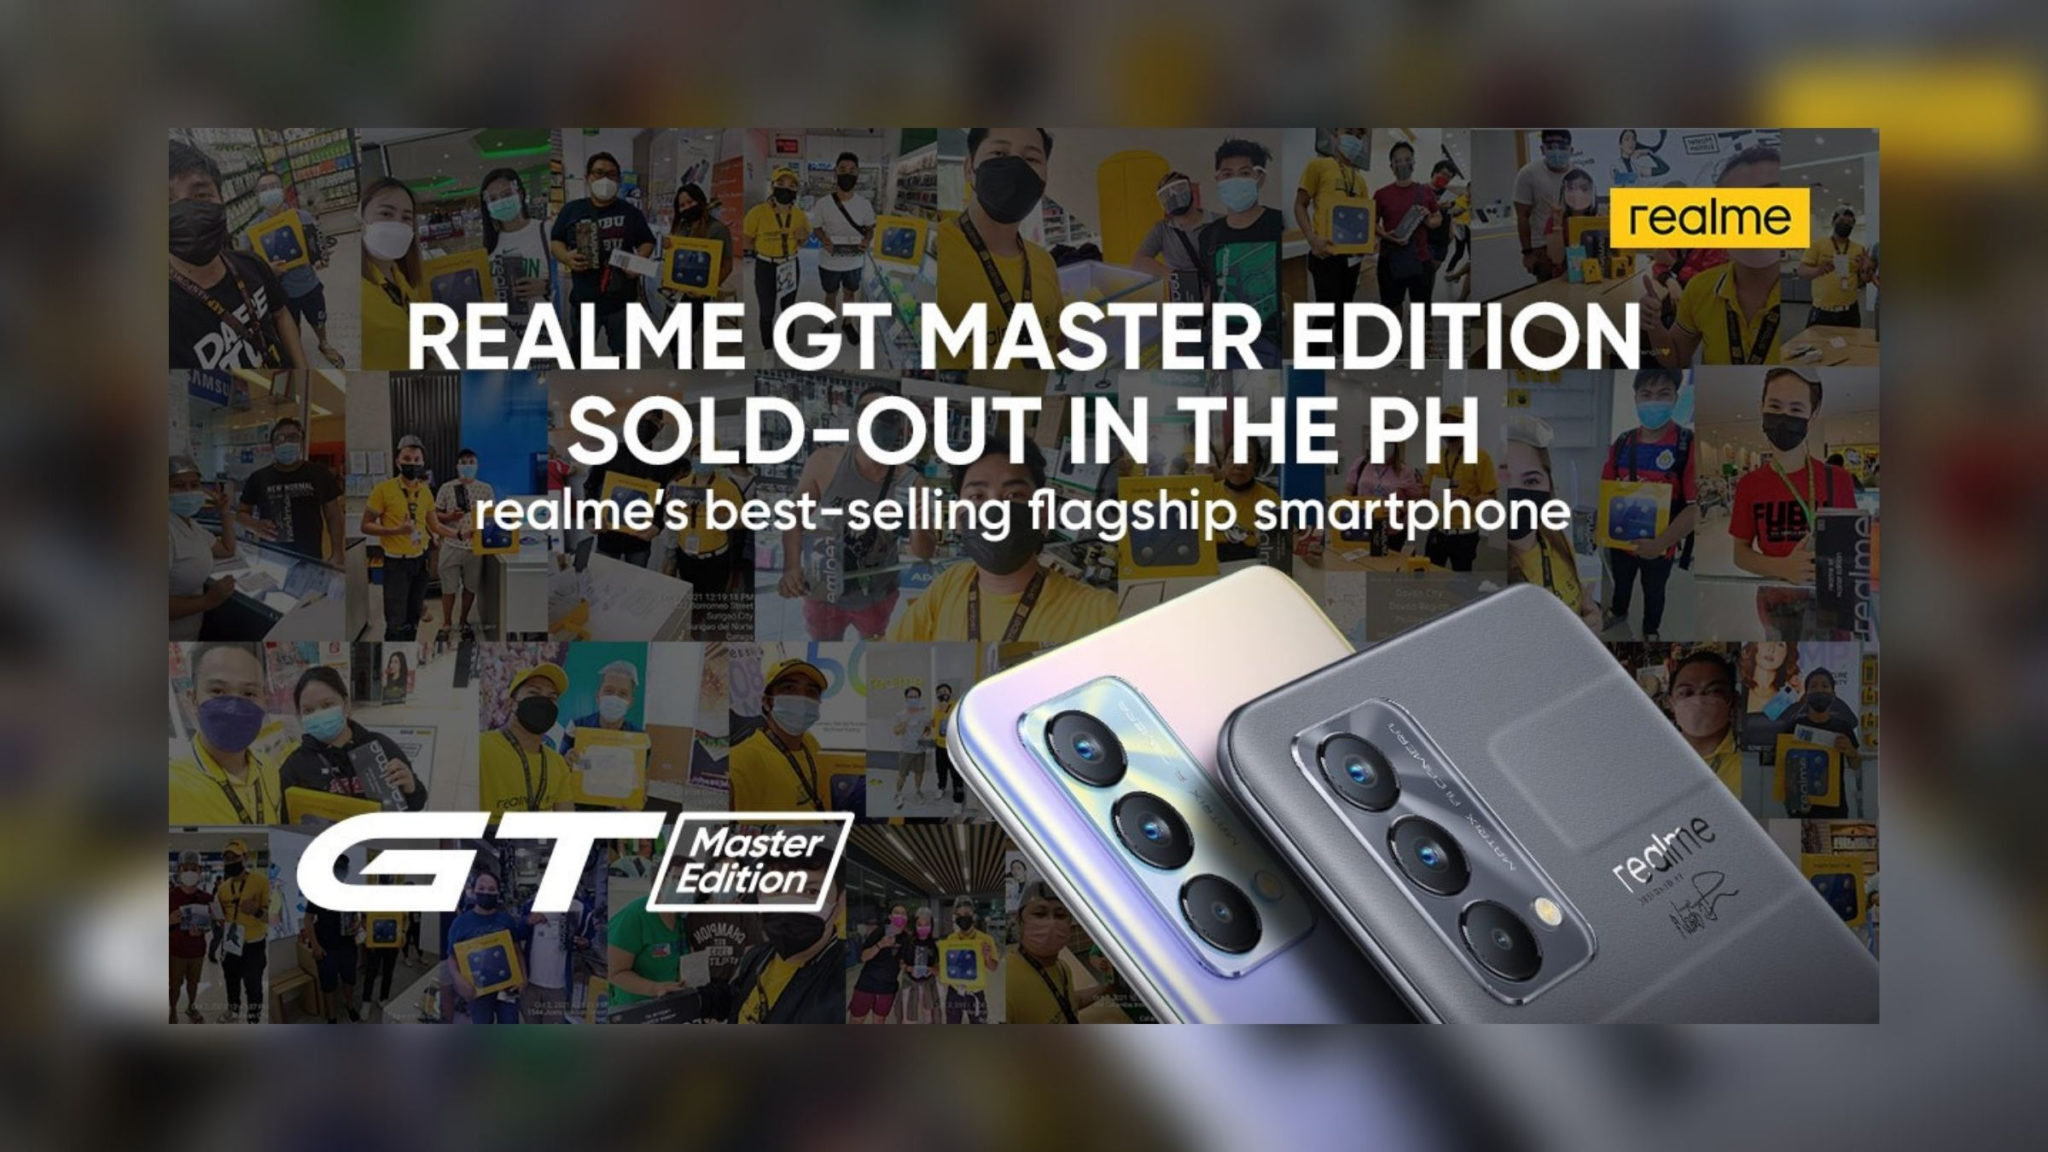 realme GT Master Edition Sold Out Header